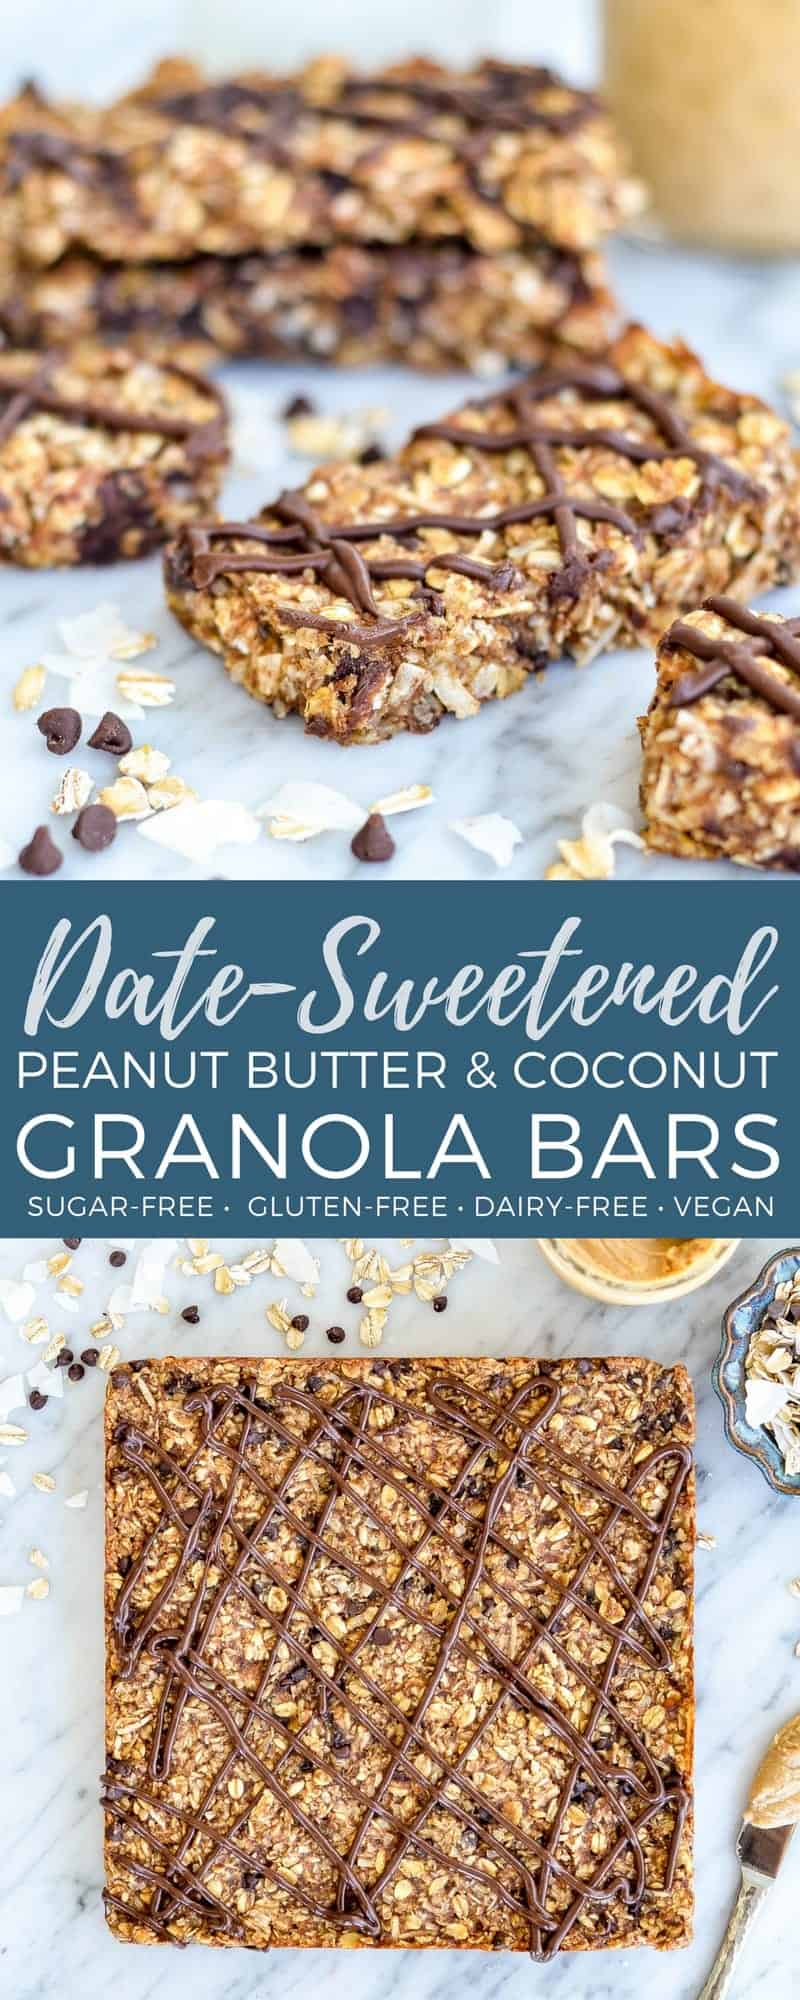 These Homemade Peanut Butter Granola Bars are a healthy homemade snack for busy moms! They are oil-free and sugar-free because they are sweetened with dates! Plus they are gluten-free, dairy-free, vegan and full of protein and fiber! #homemade #granolabar #recipe #peanutbutter #healthy